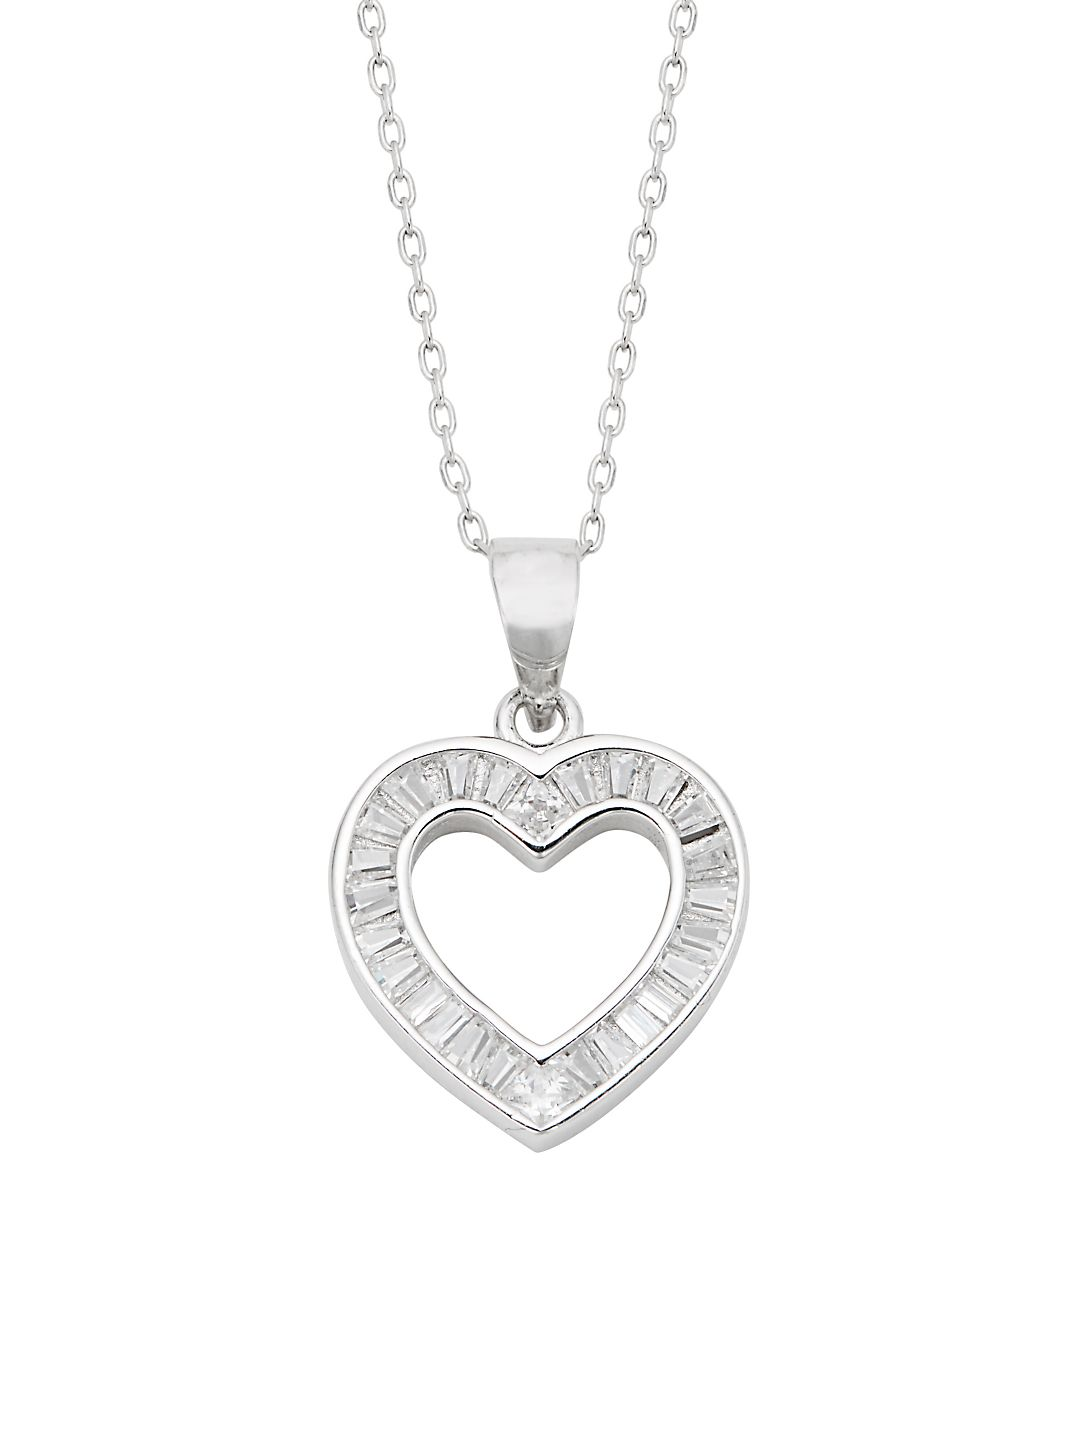 Sterling Silver and Cubic Zirconia Baguette Heart Necklace